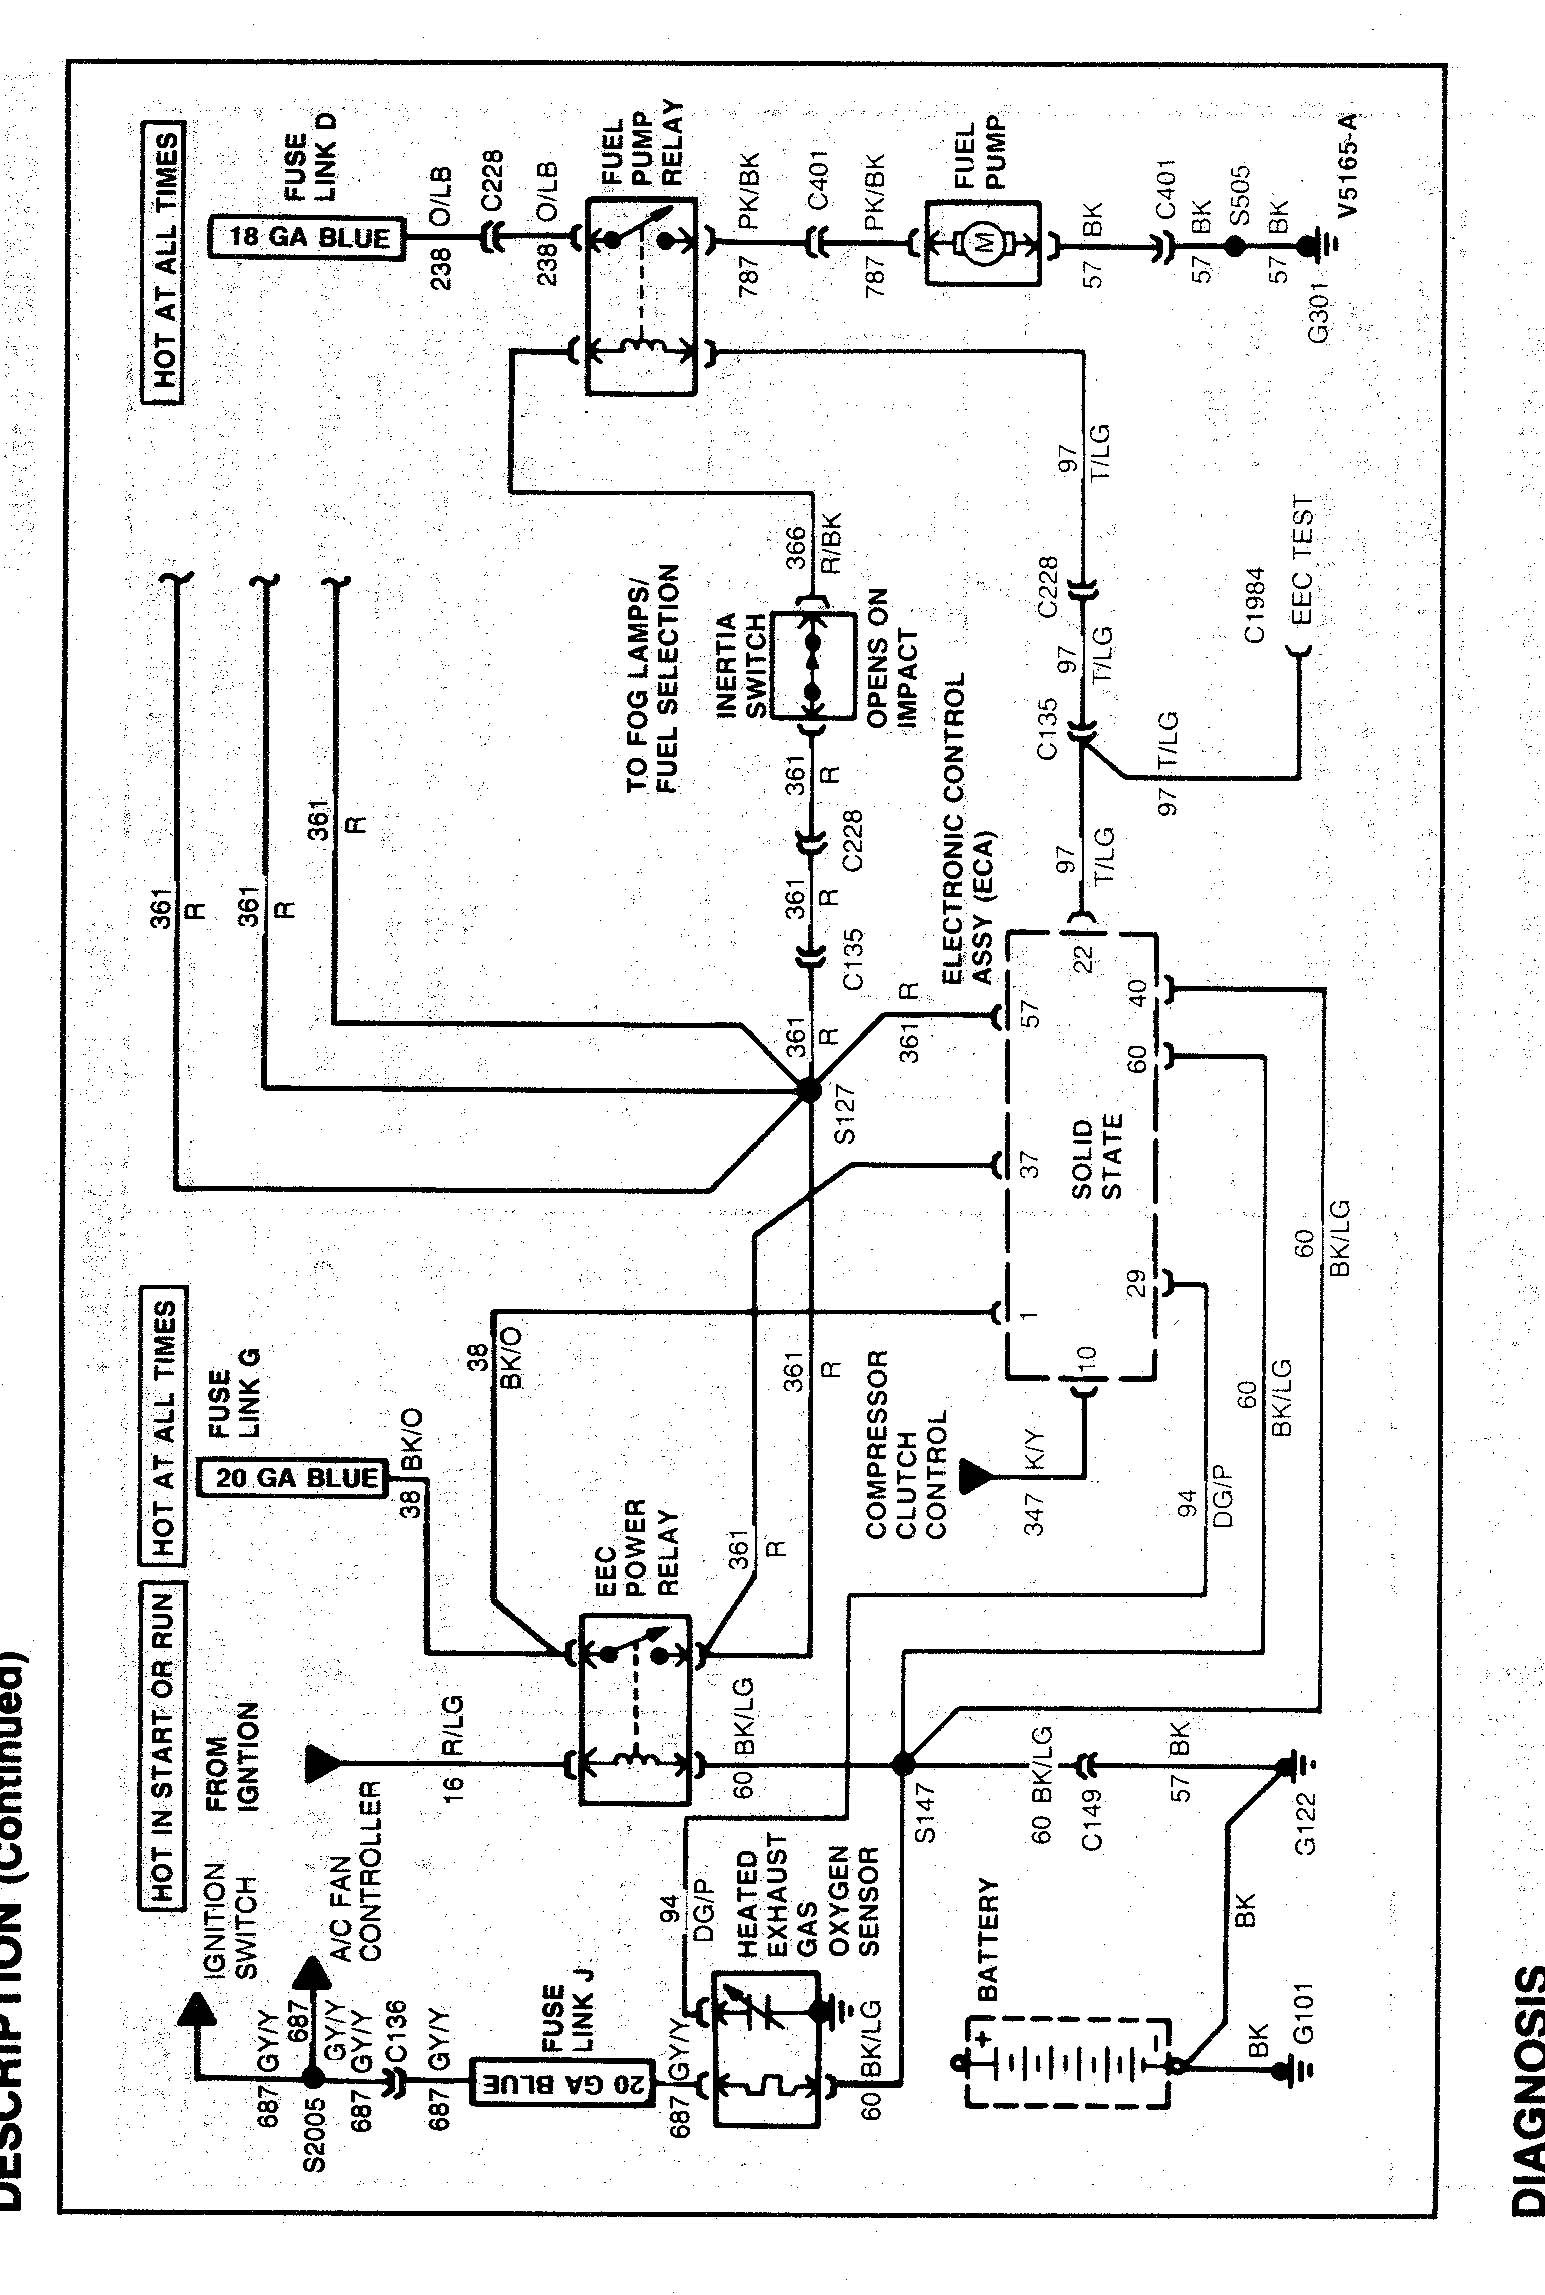 Ford Mustang Fuel System Diagram